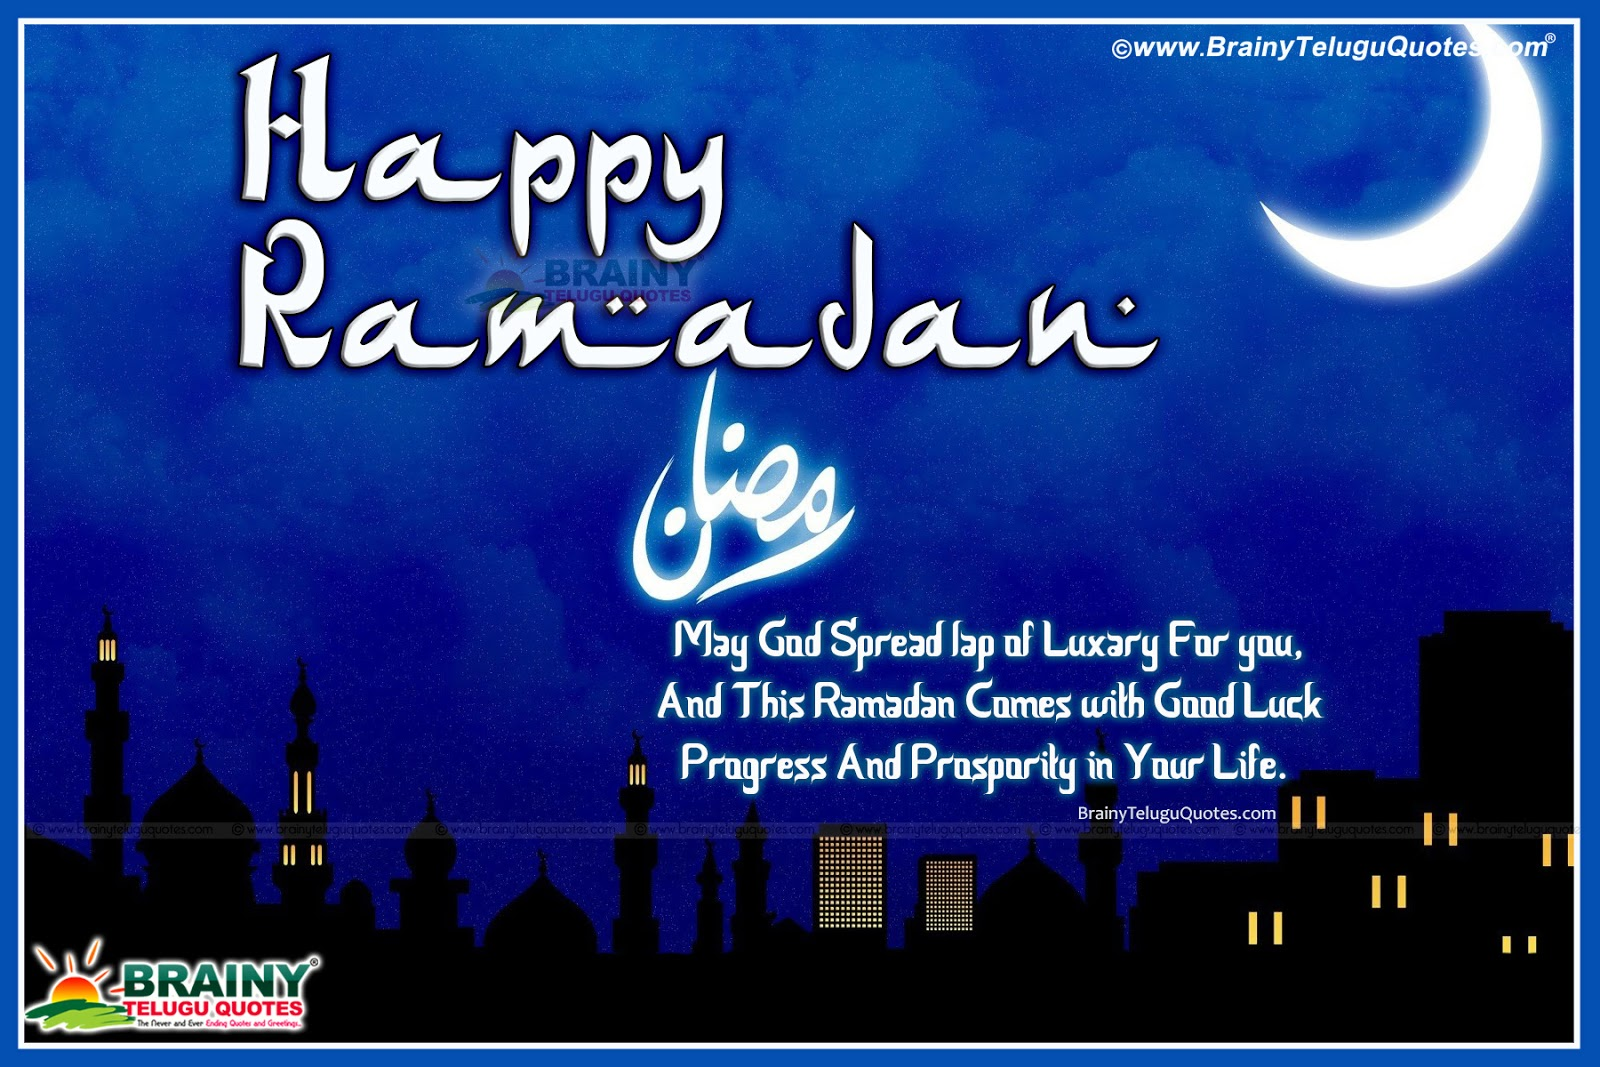 Festival Of Ramadan Greetings And Nice Wishes Messages